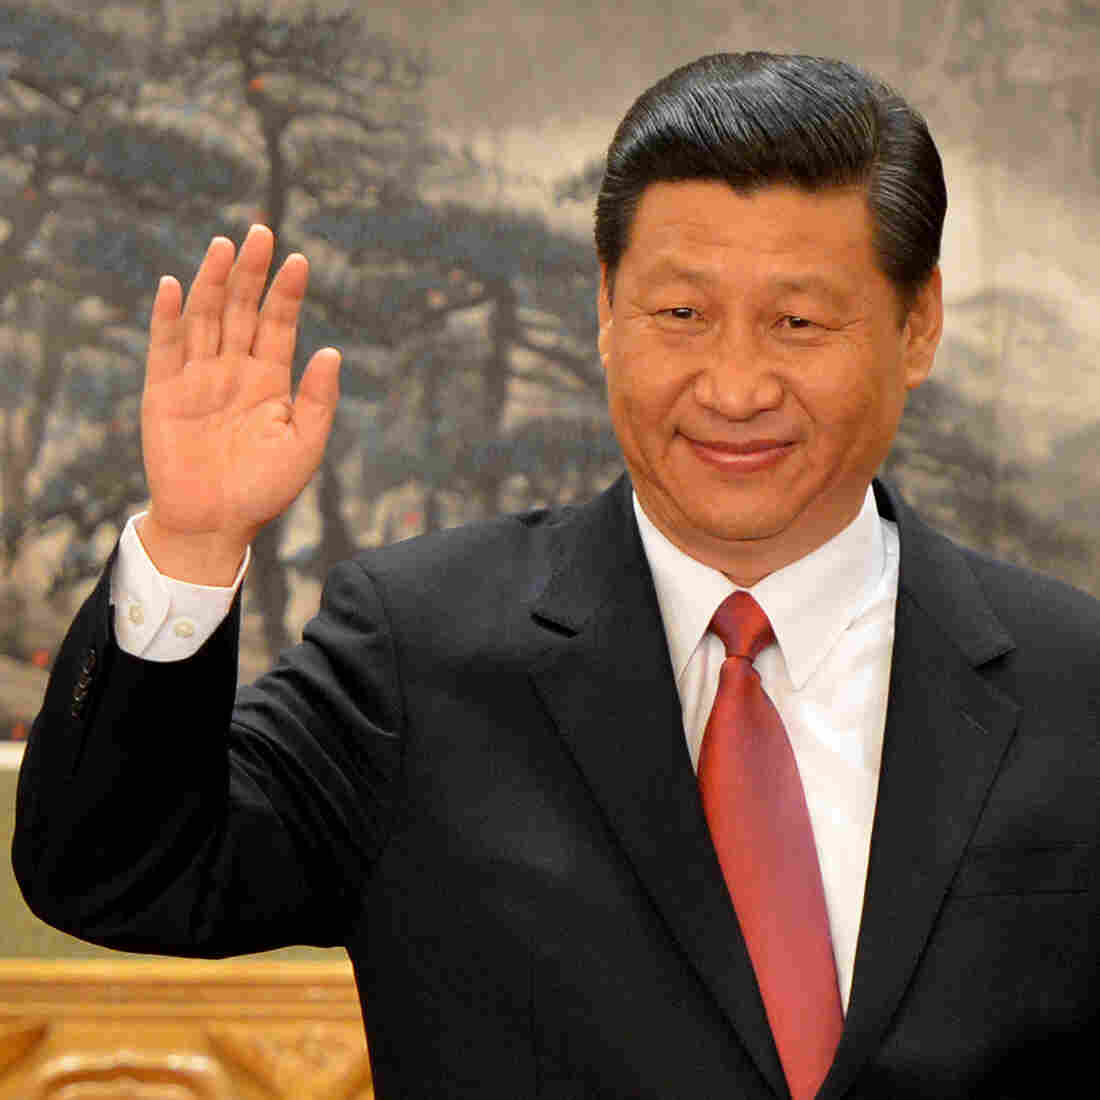 As Xi Jinping Takes Top Post In China, Hopes Of Reform Fade